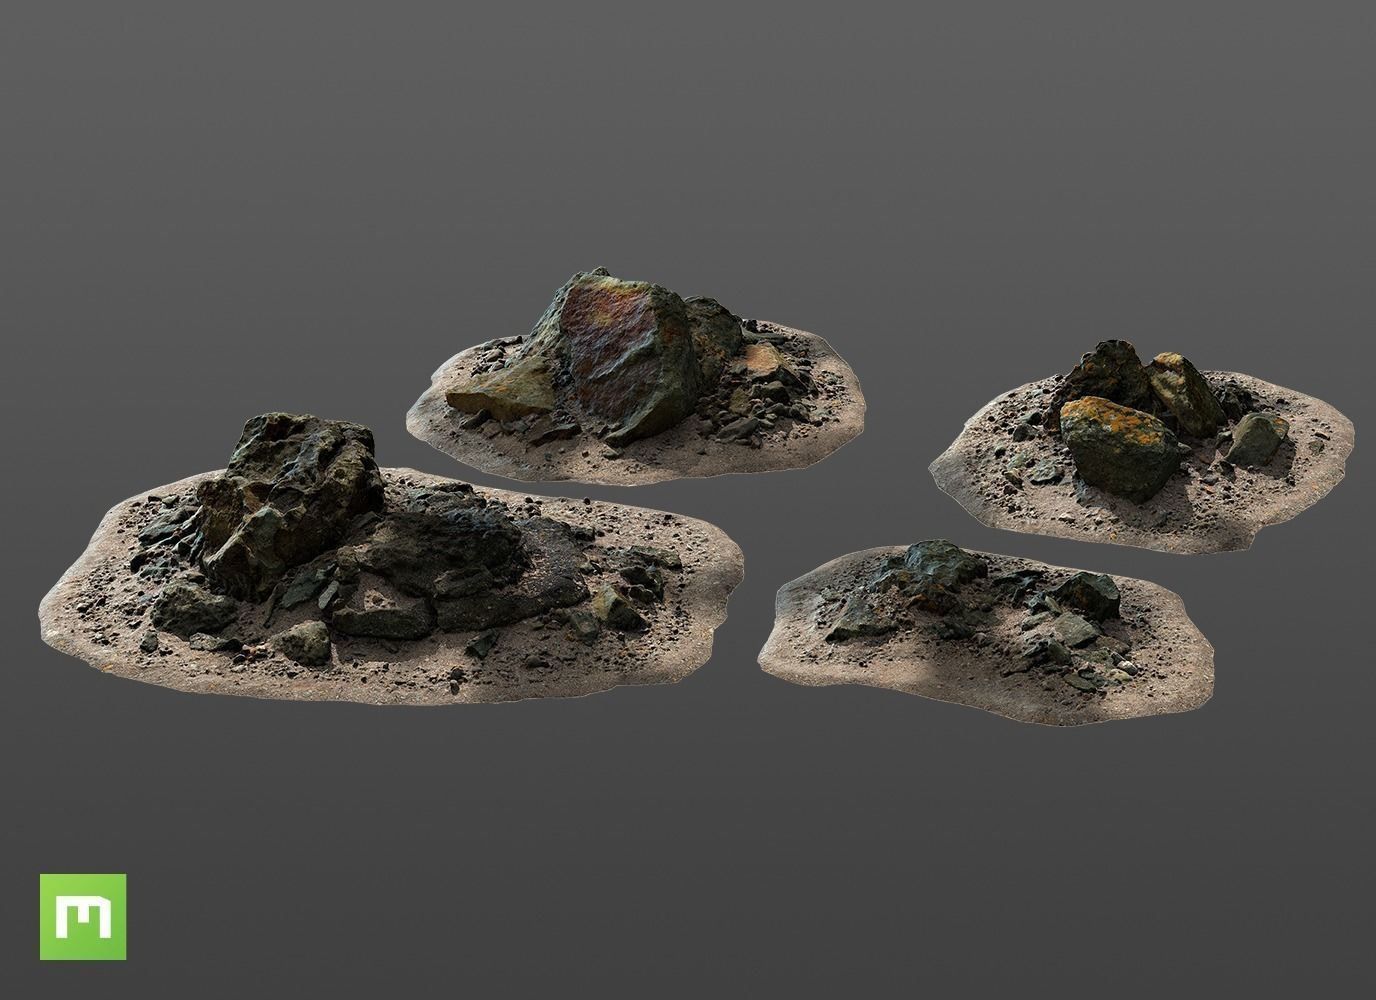 Pin by CGTrader on 3D Exterior in 2019   Model, Exterior, Volcanic rock